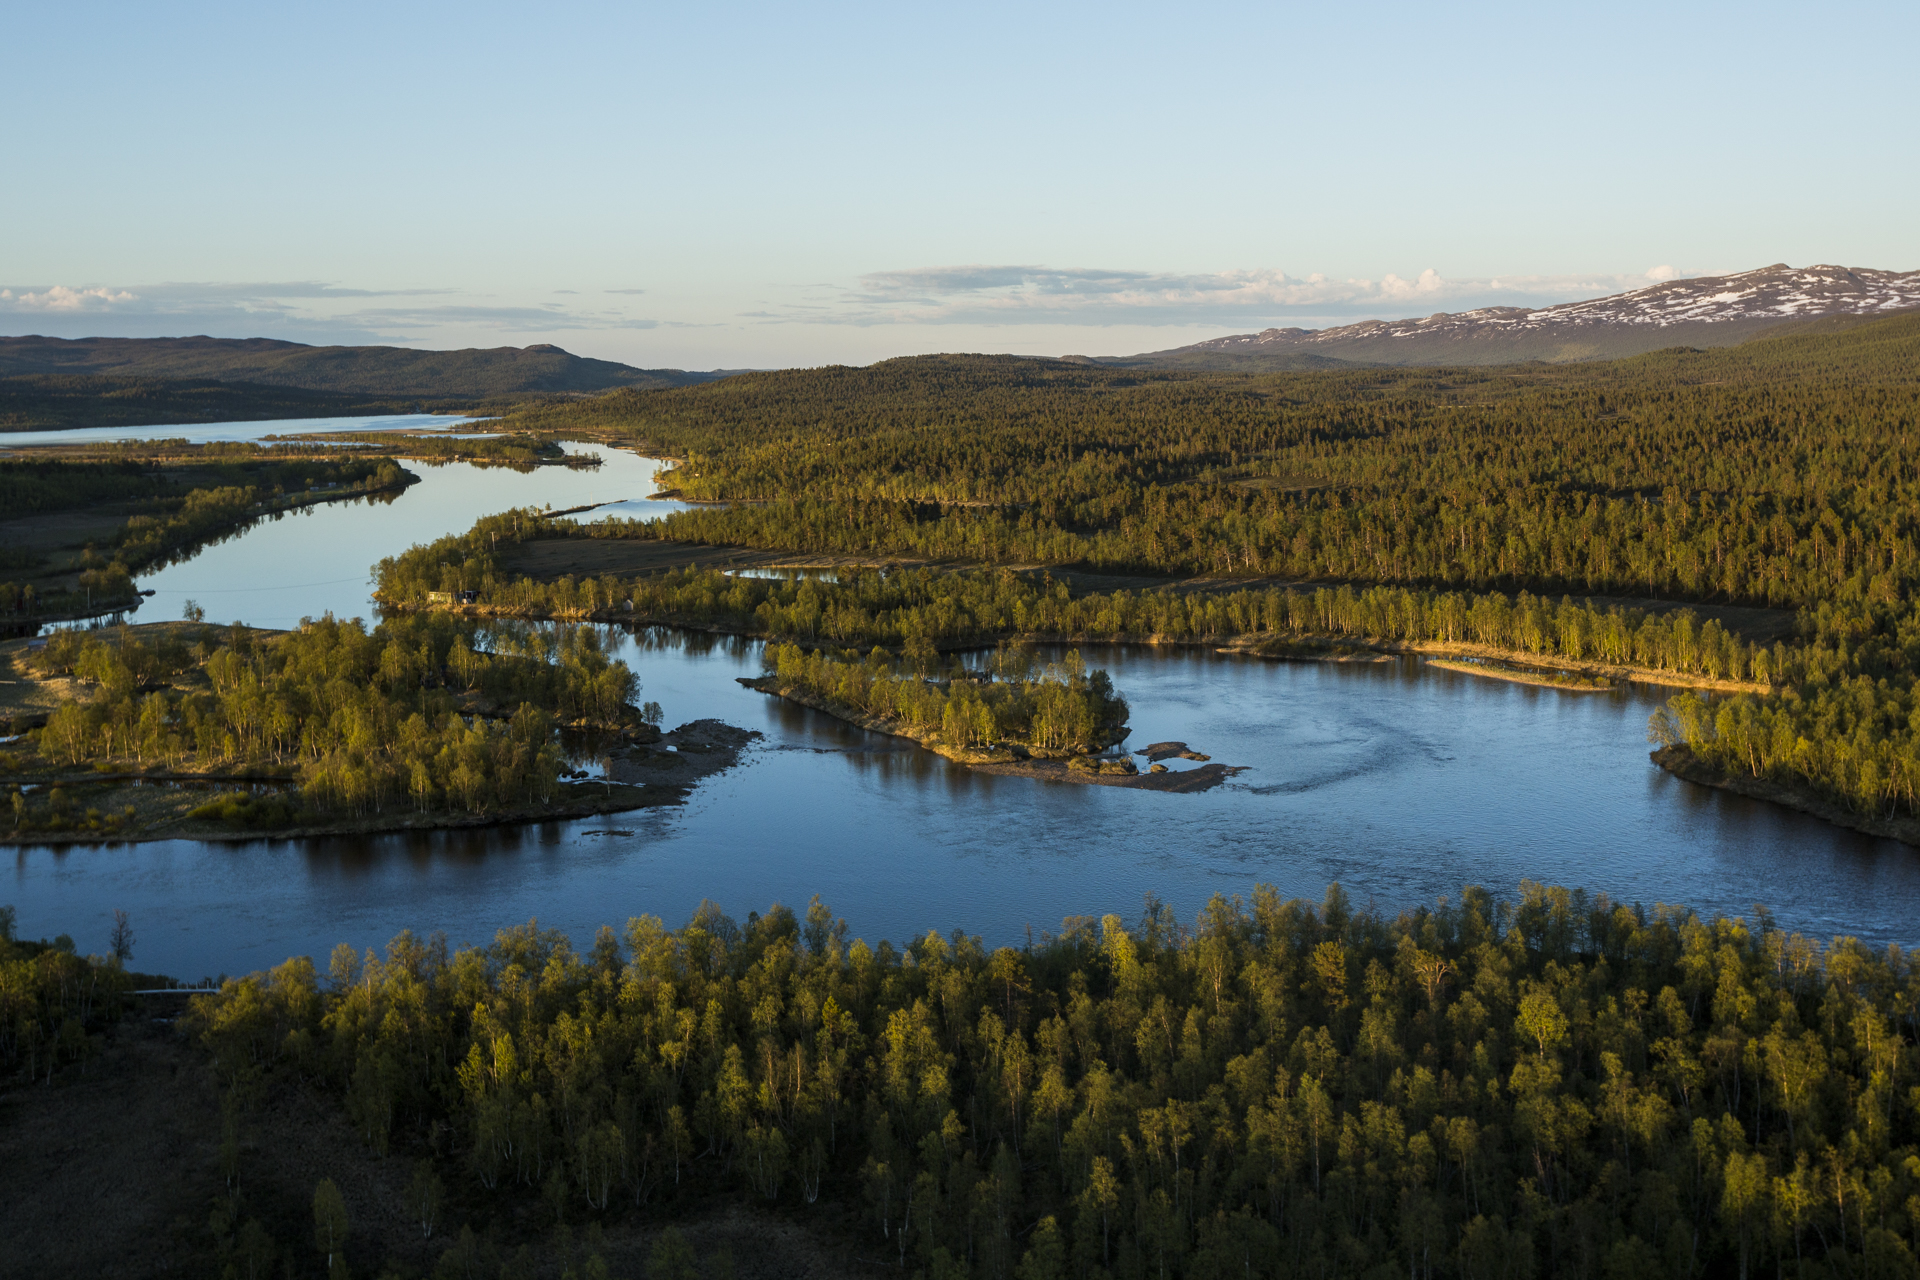 A unique 96 hour-long non-stop relay race to raise awareness of sun dangers from June 21st to 25th 2015 in Lapland, Sweden.